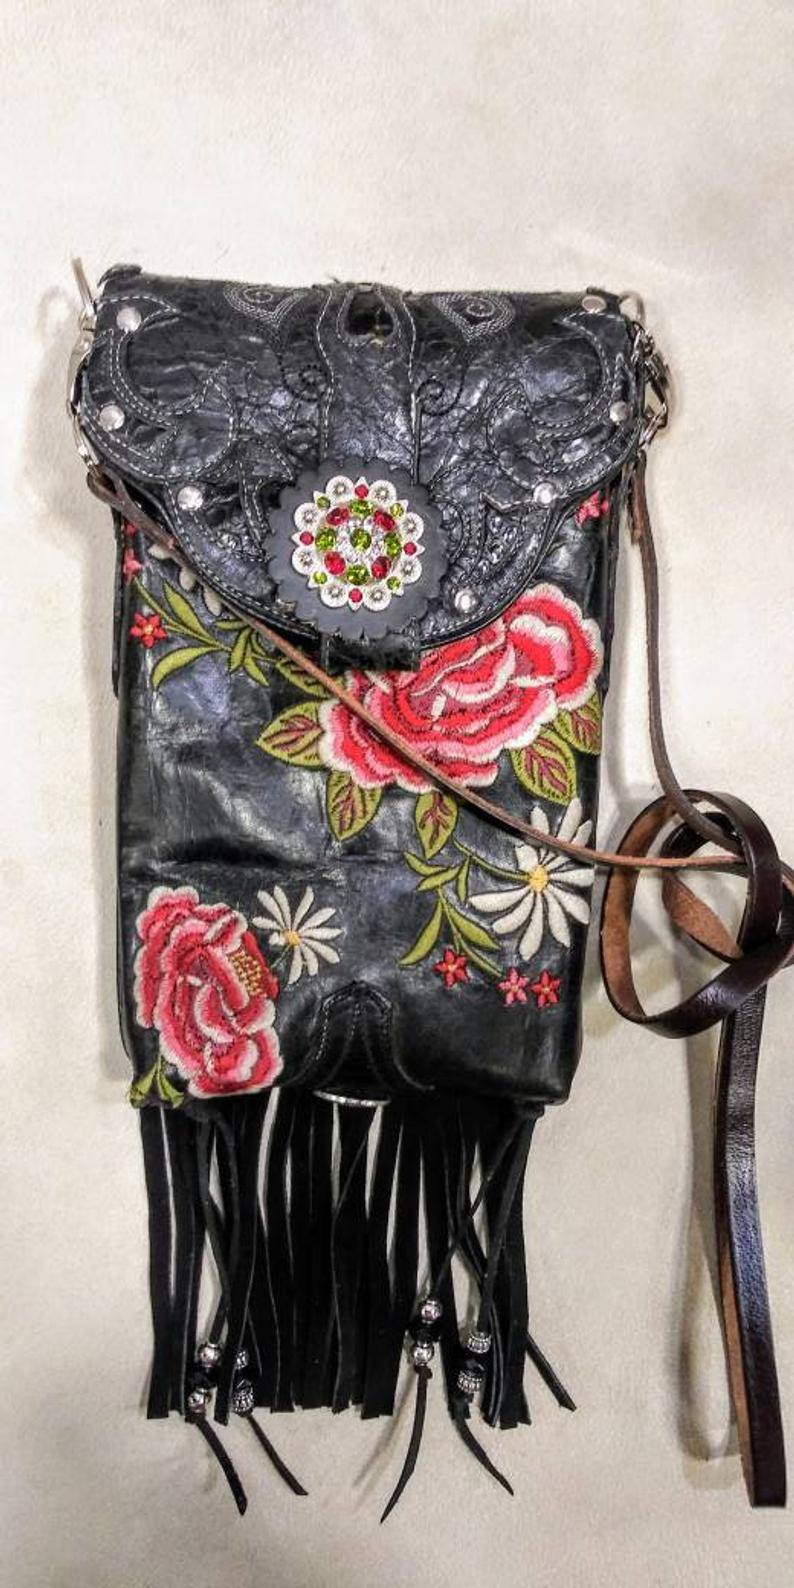 Western Crossbody Purse – Cowboy Boot Purse – Fringe Purse – Leather Hipster HP752 cowboy boot purses, western fringe purse, handmade leather purses, boot purse, handmade western purse, custom leather handbags Chris Thompson Bags